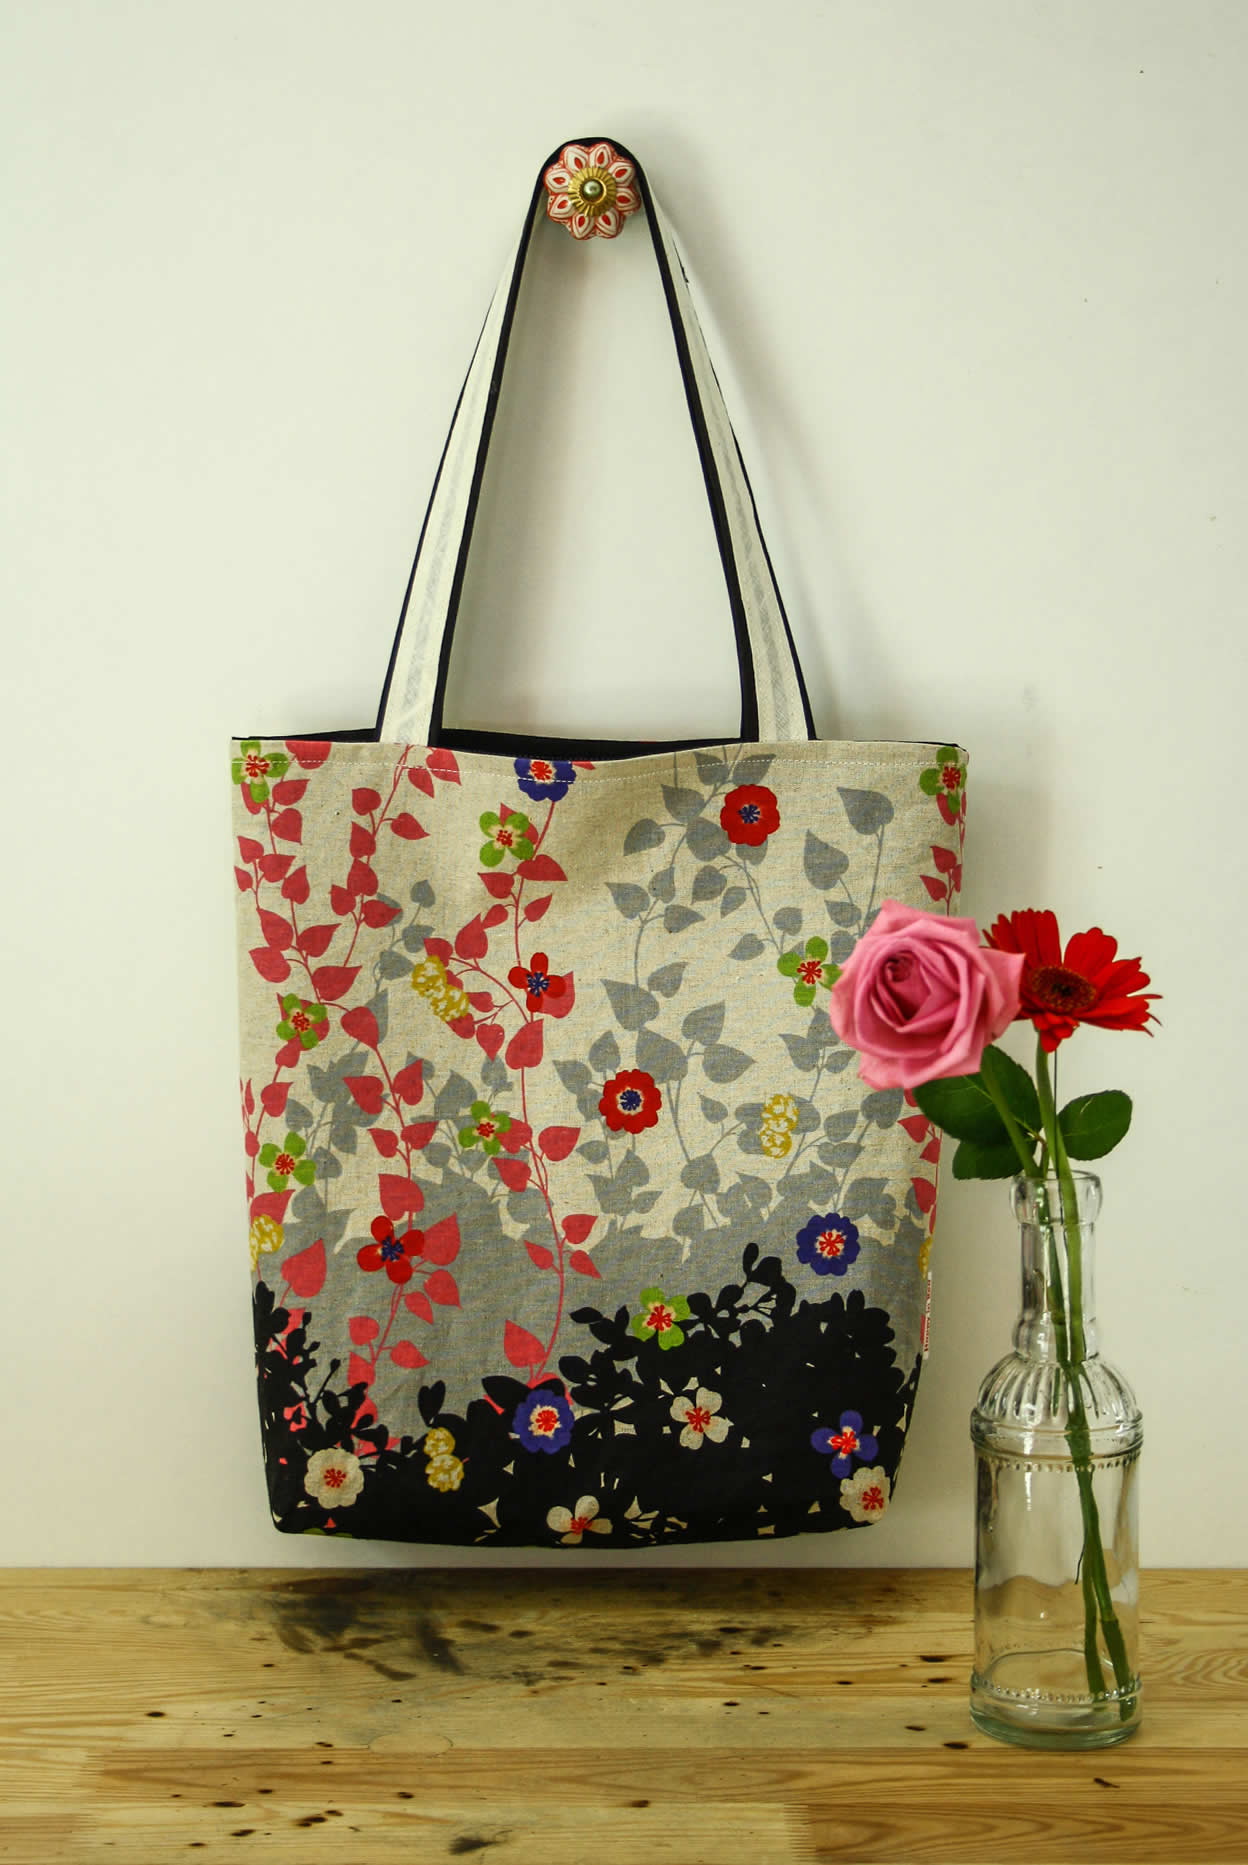 Tote bag sewing pattern | Happy in Red